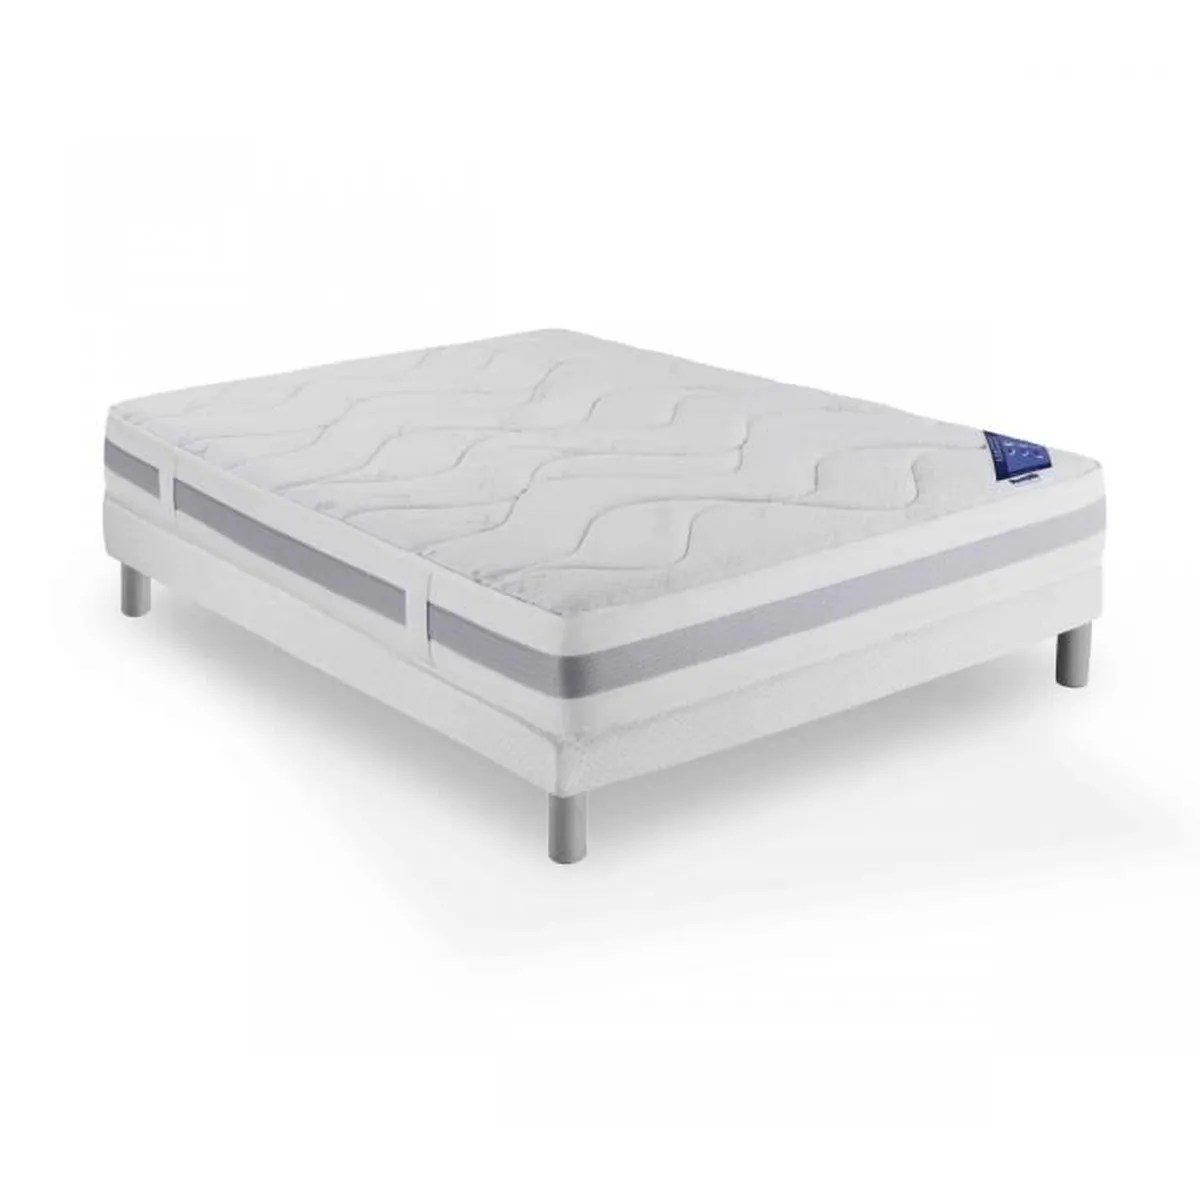 Matelas Dunlopillo Latex 160x200 Ensemble Dunlopillo Couchage Latex Connecting 3 Sommier Pieds